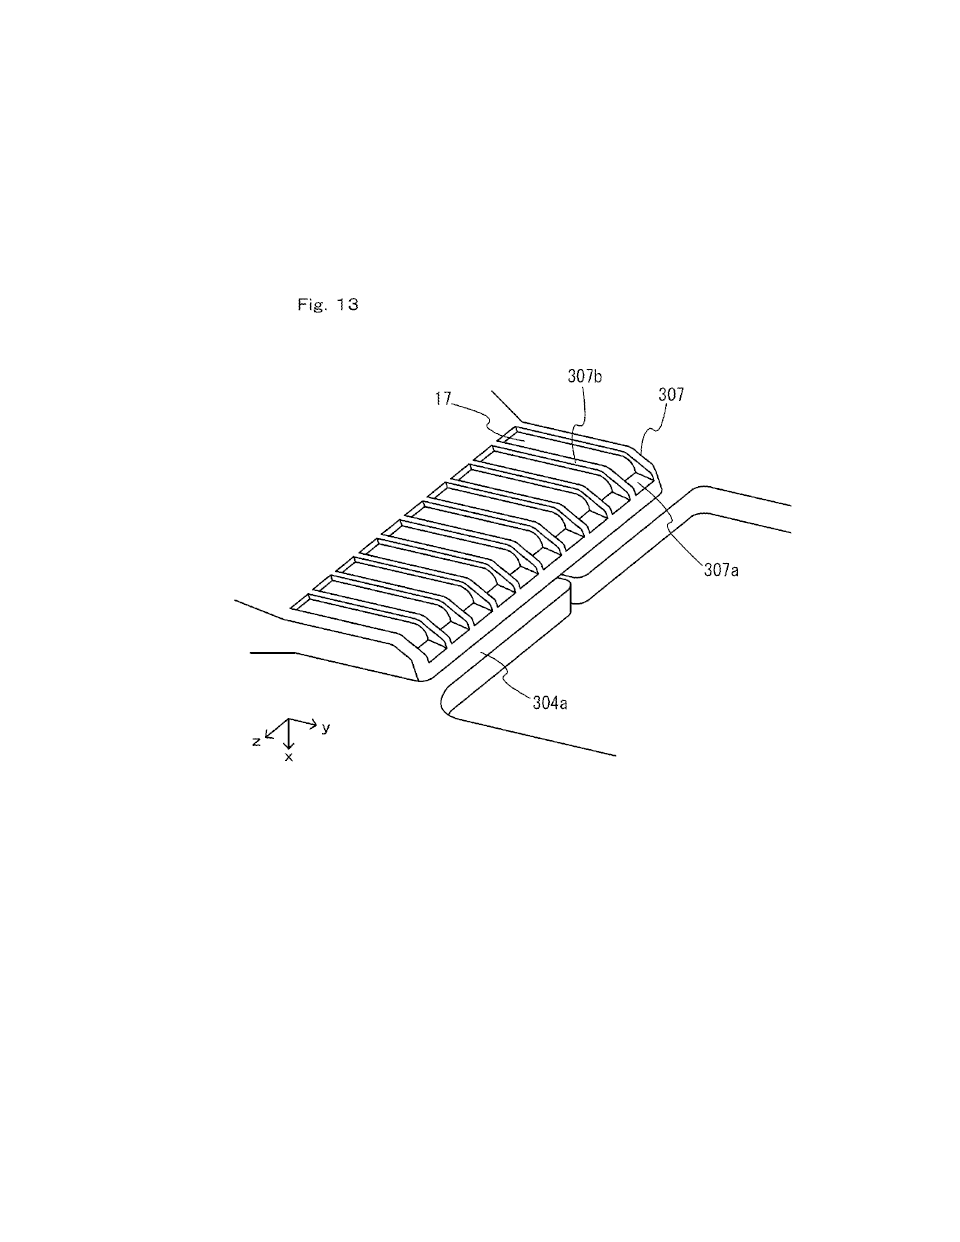 Nintendo files a mother-load of Switch patents (controller